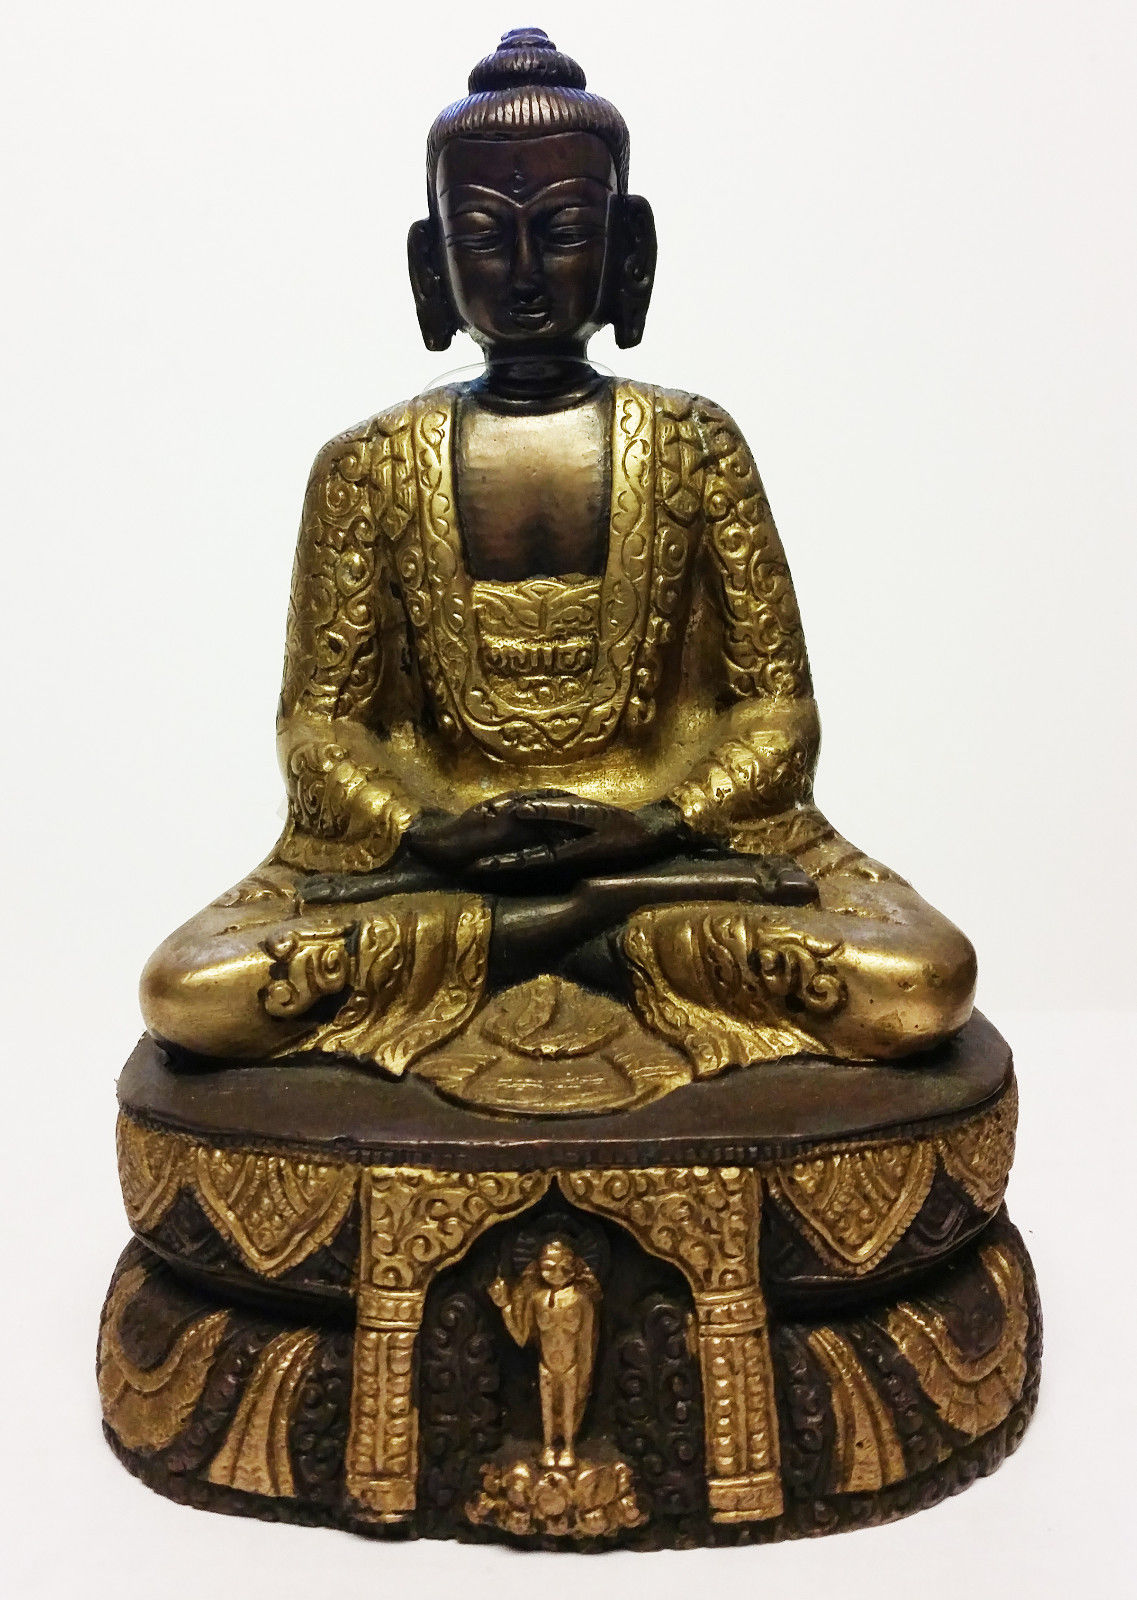 Mixed Metals Buddha Statue 7